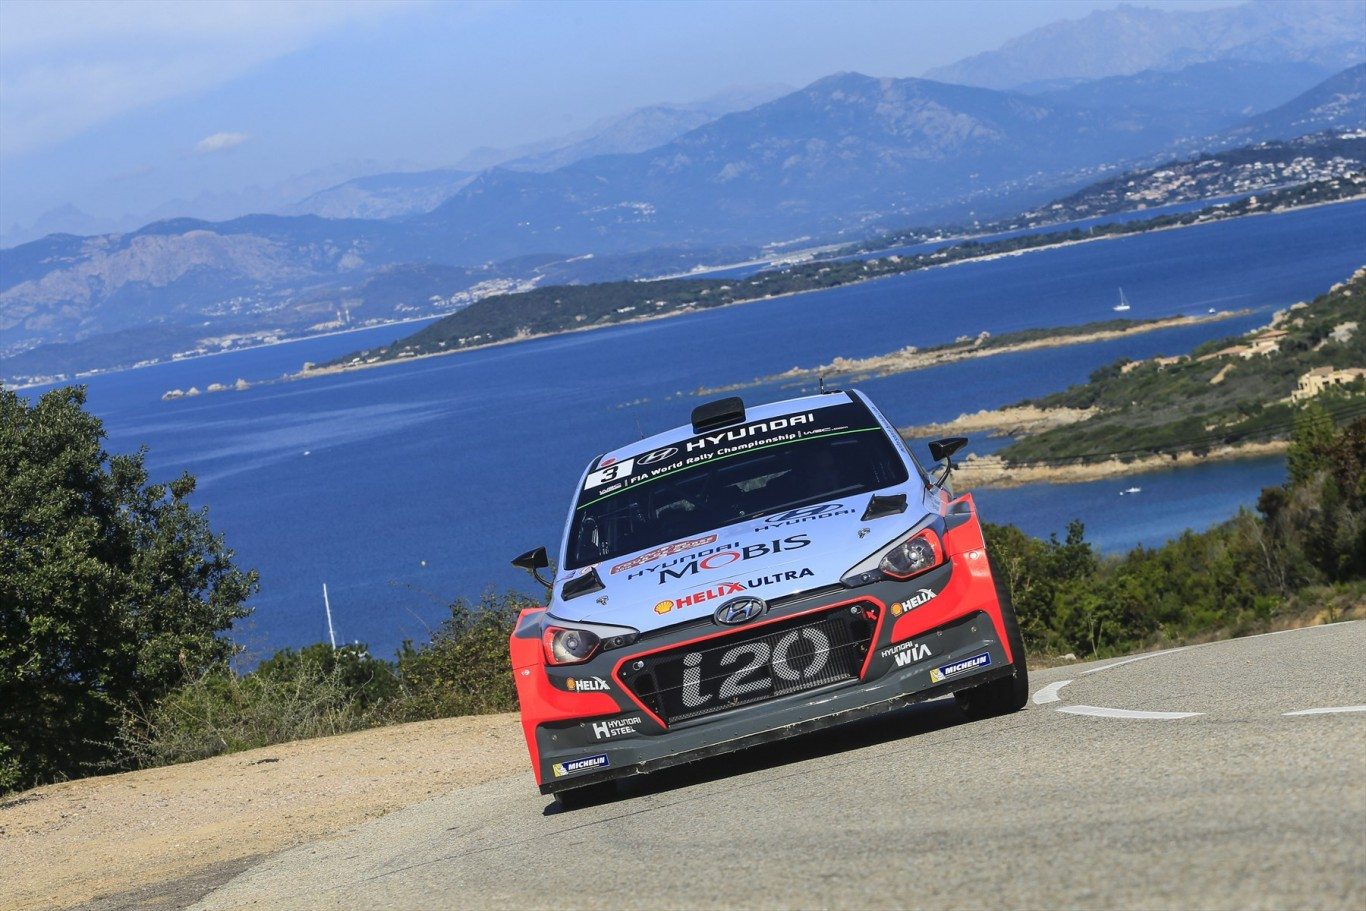 Hyundai on podium again at Tour de Corse, Neuville stays with the team